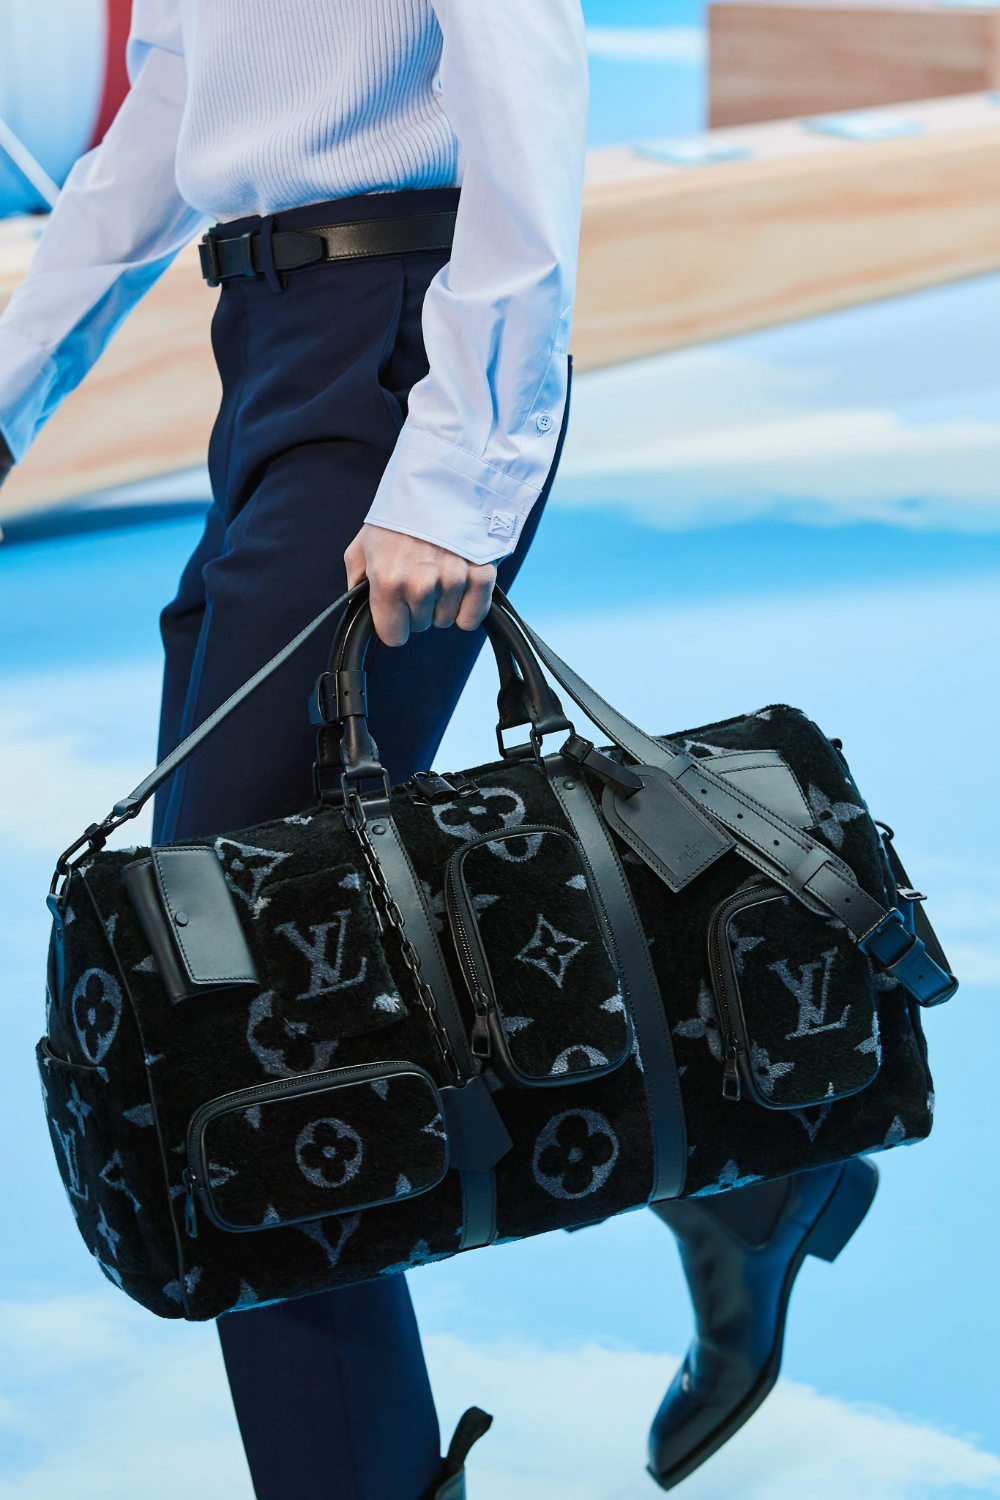 Louis Vuitton Fall 2020 Menswear Collection Vogue In 2020 Louis Vuitton Men Louis Vuitton Shoes Louis Vuitton